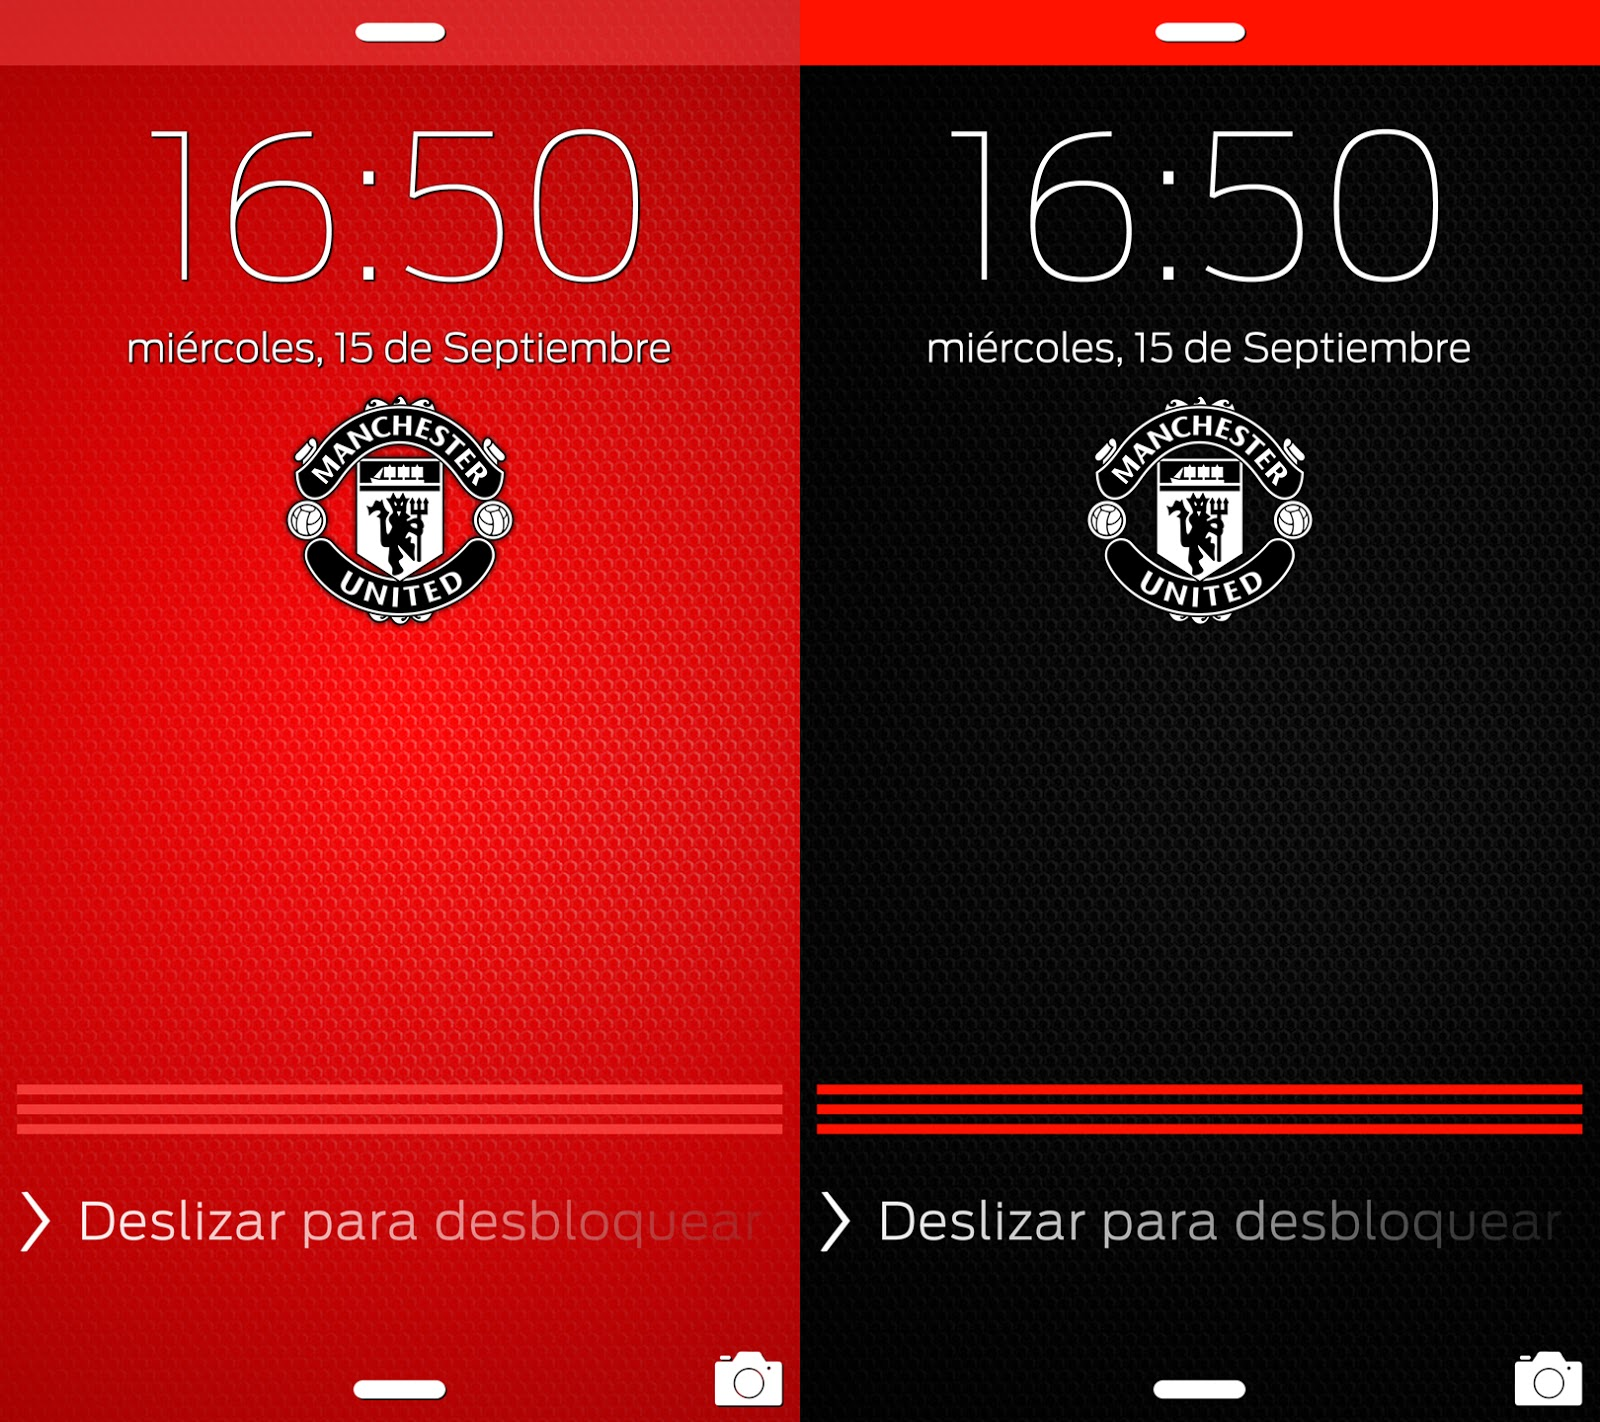 Golote hd manchester united pre match champions league 201516 smartphone wallpaper voltagebd Choice Image